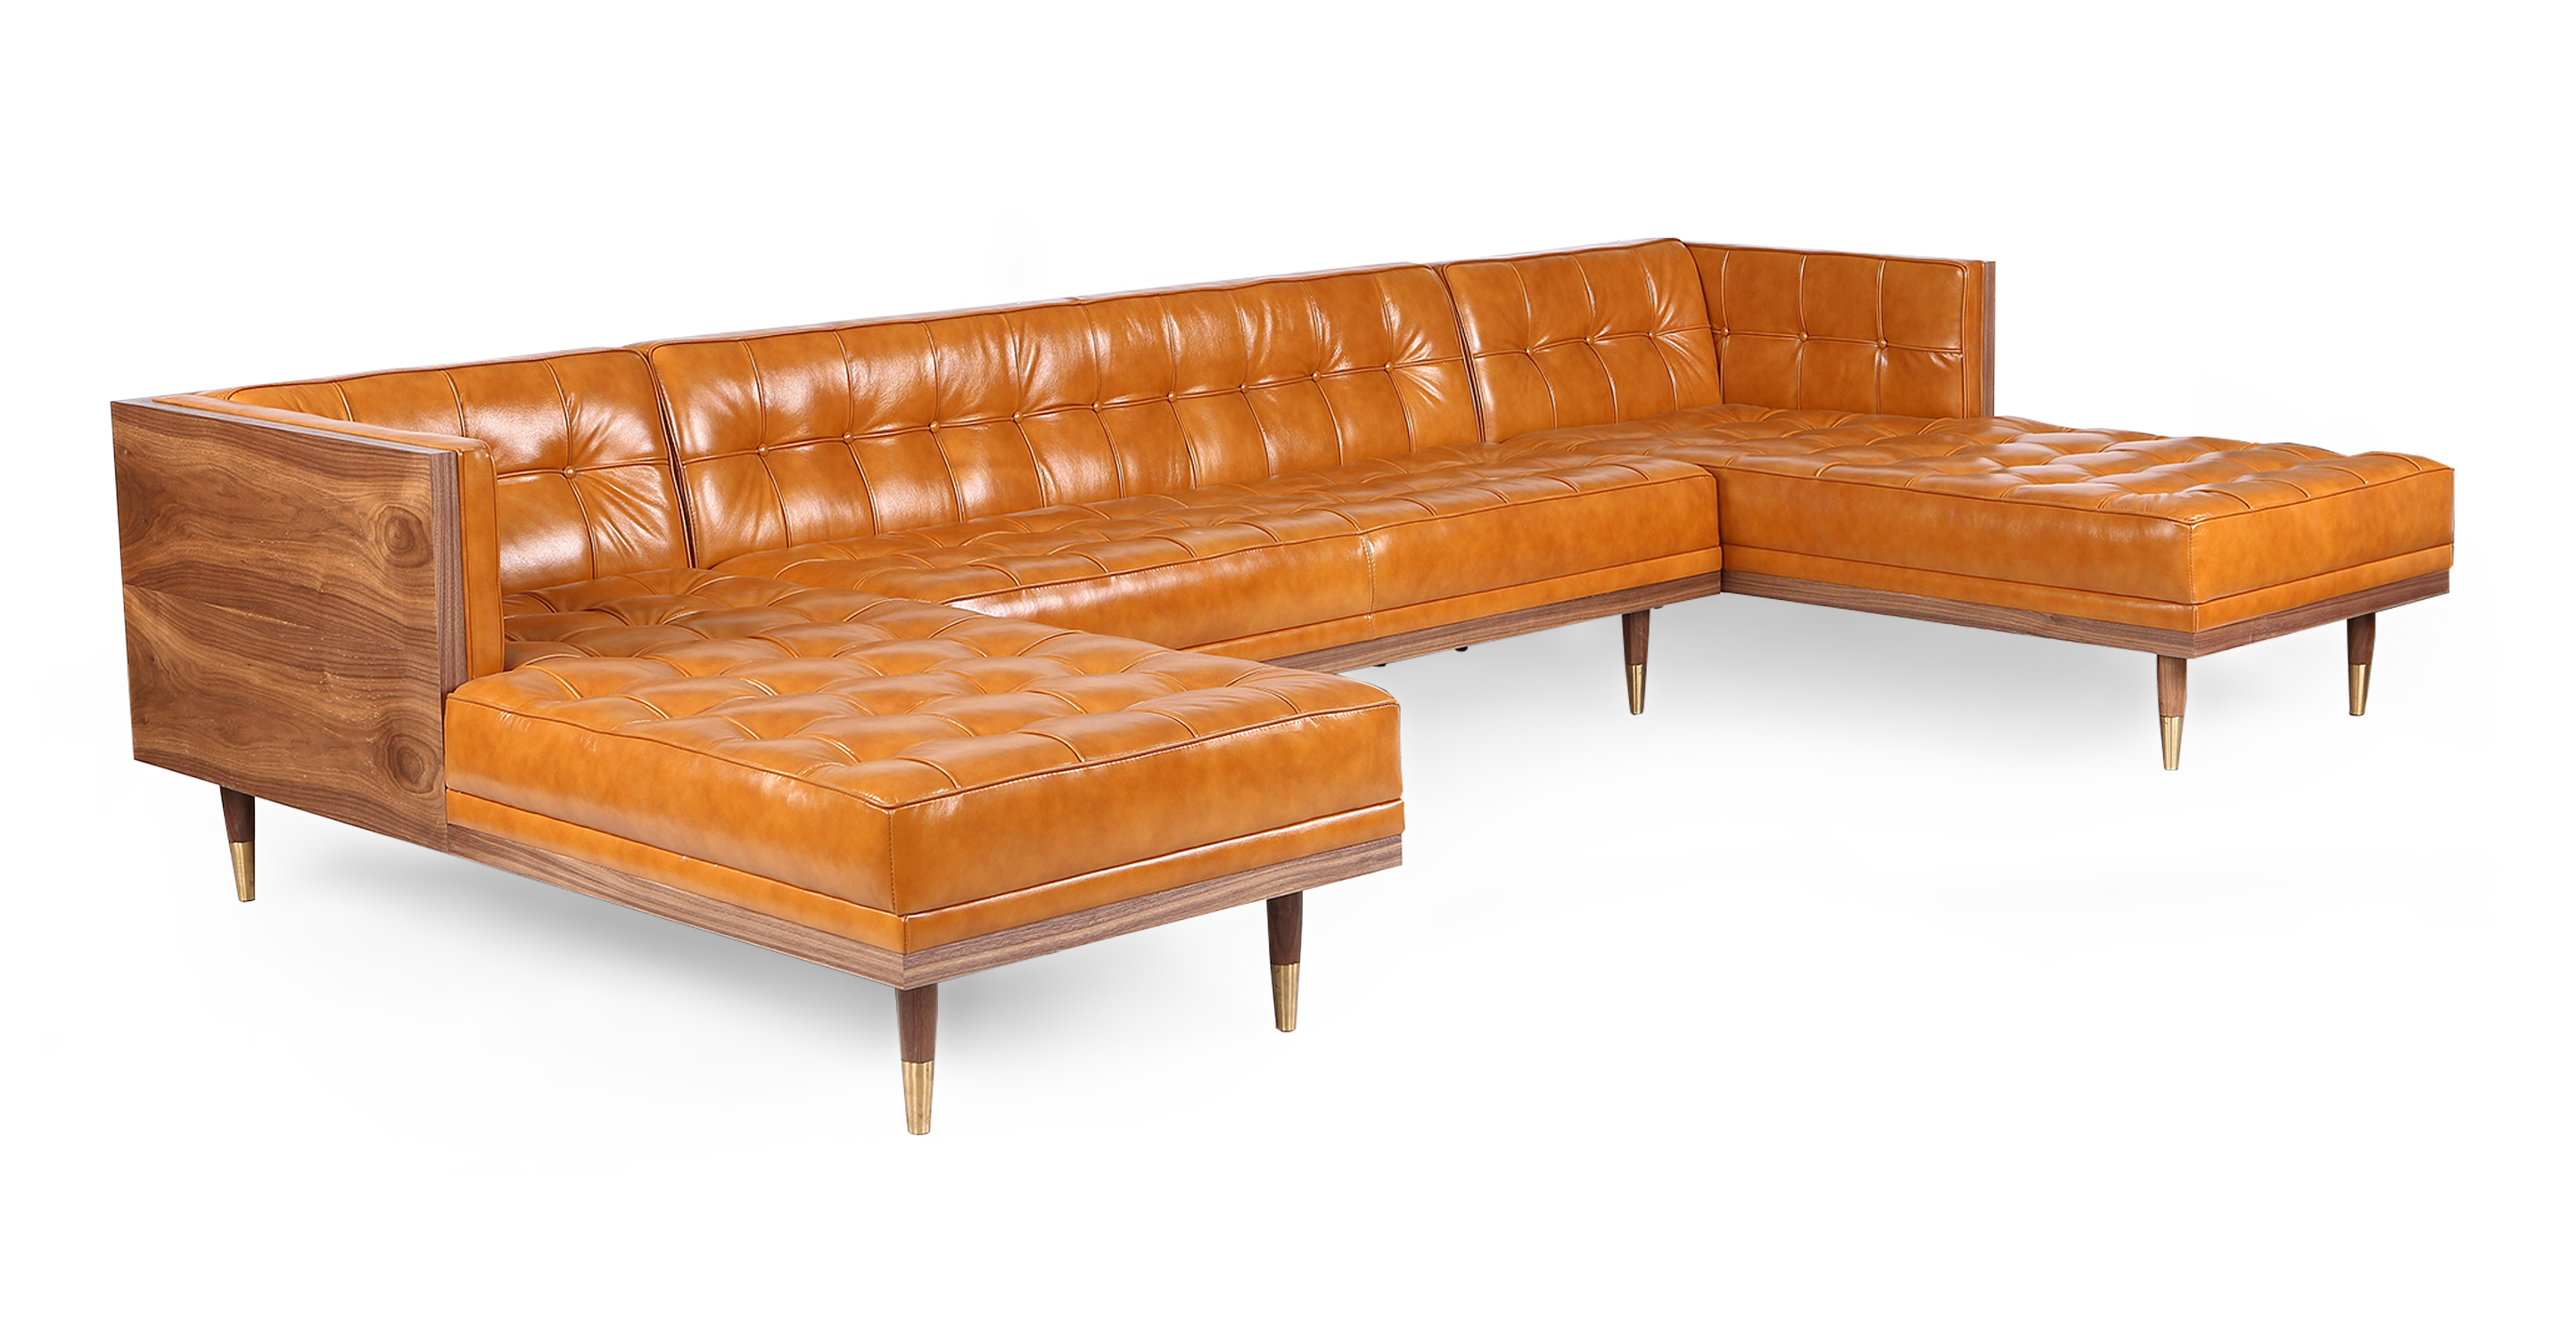 "Woodrow Box 126"" Leather Sofa U-Sectional, Walnut/Tan Aniline"